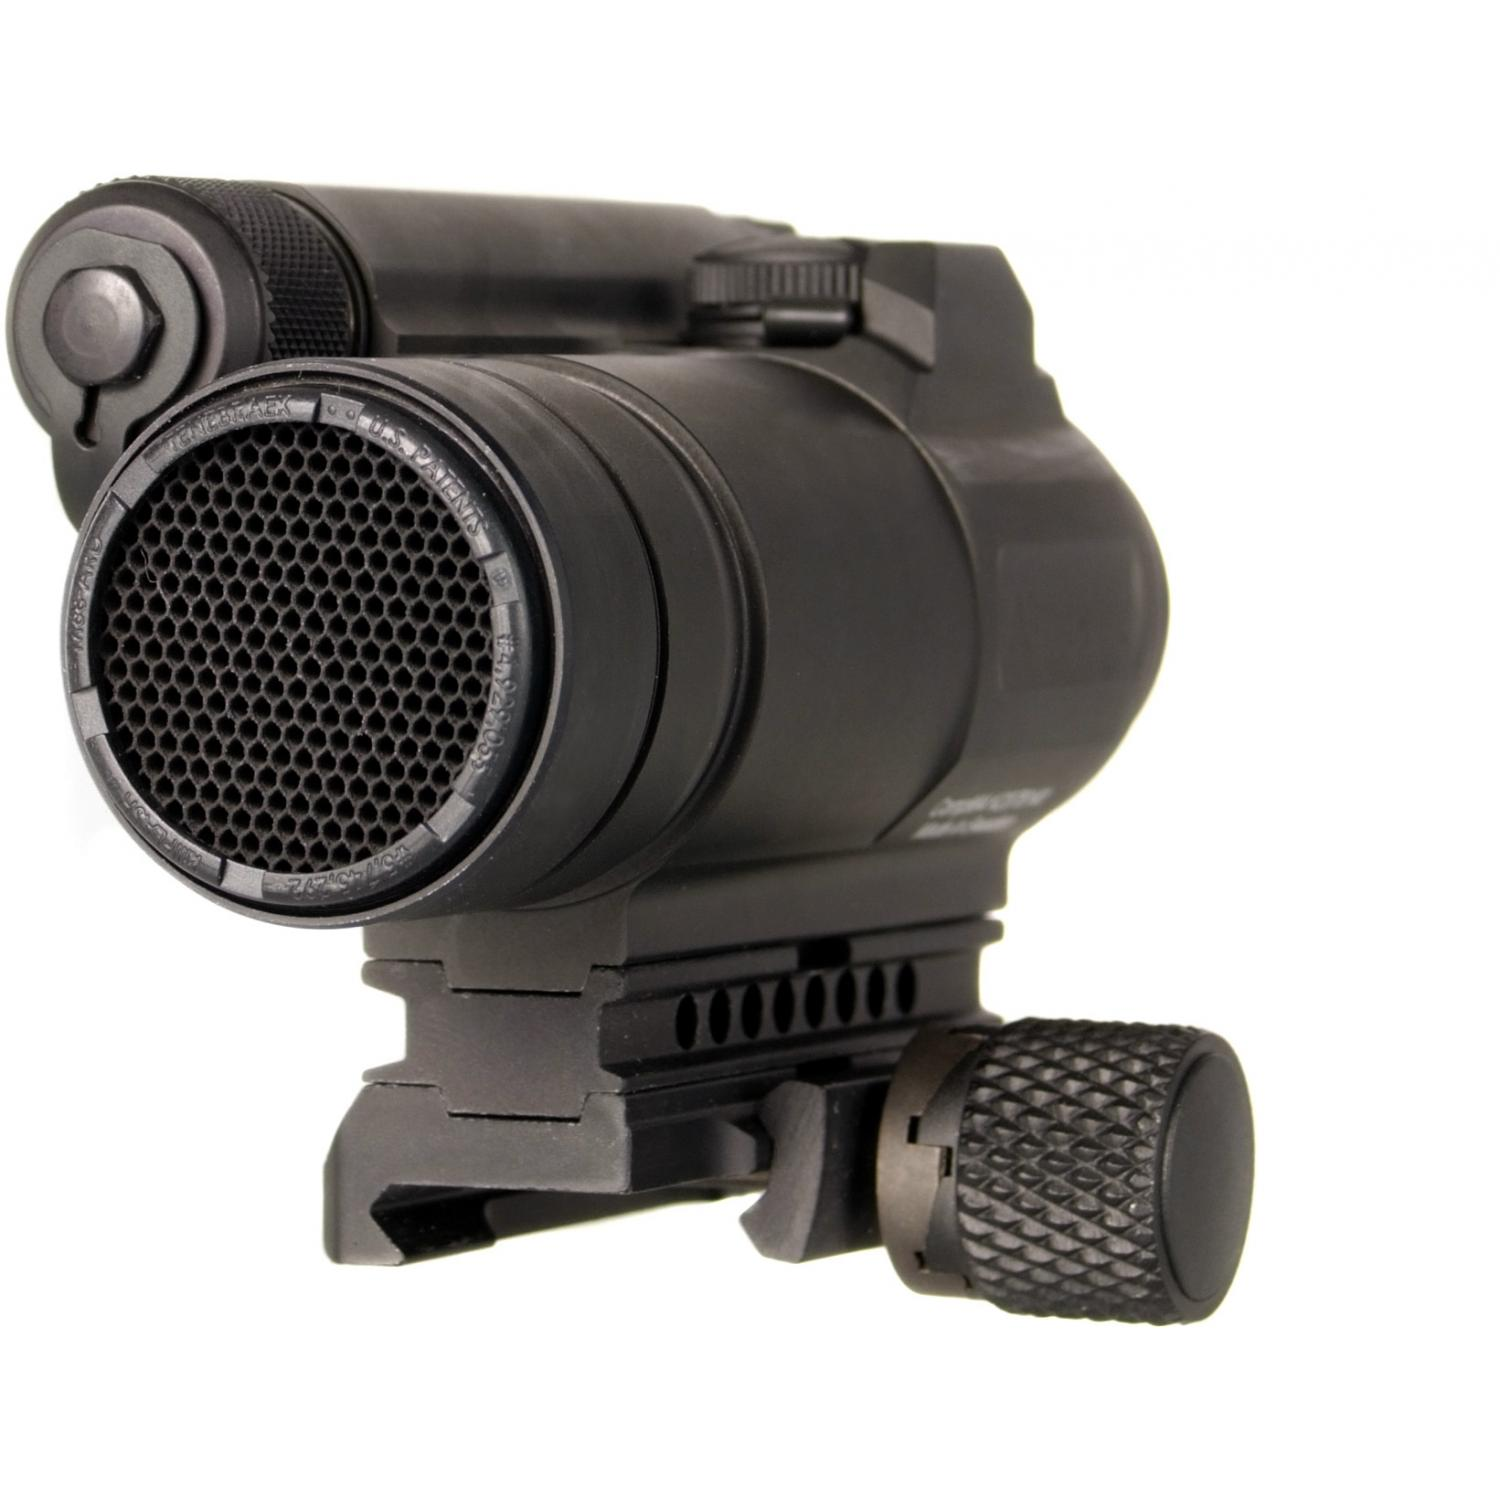 Picture of Aimpoint CompM4 Red Dot 2 MOA Sight With Mount - Black - 11972